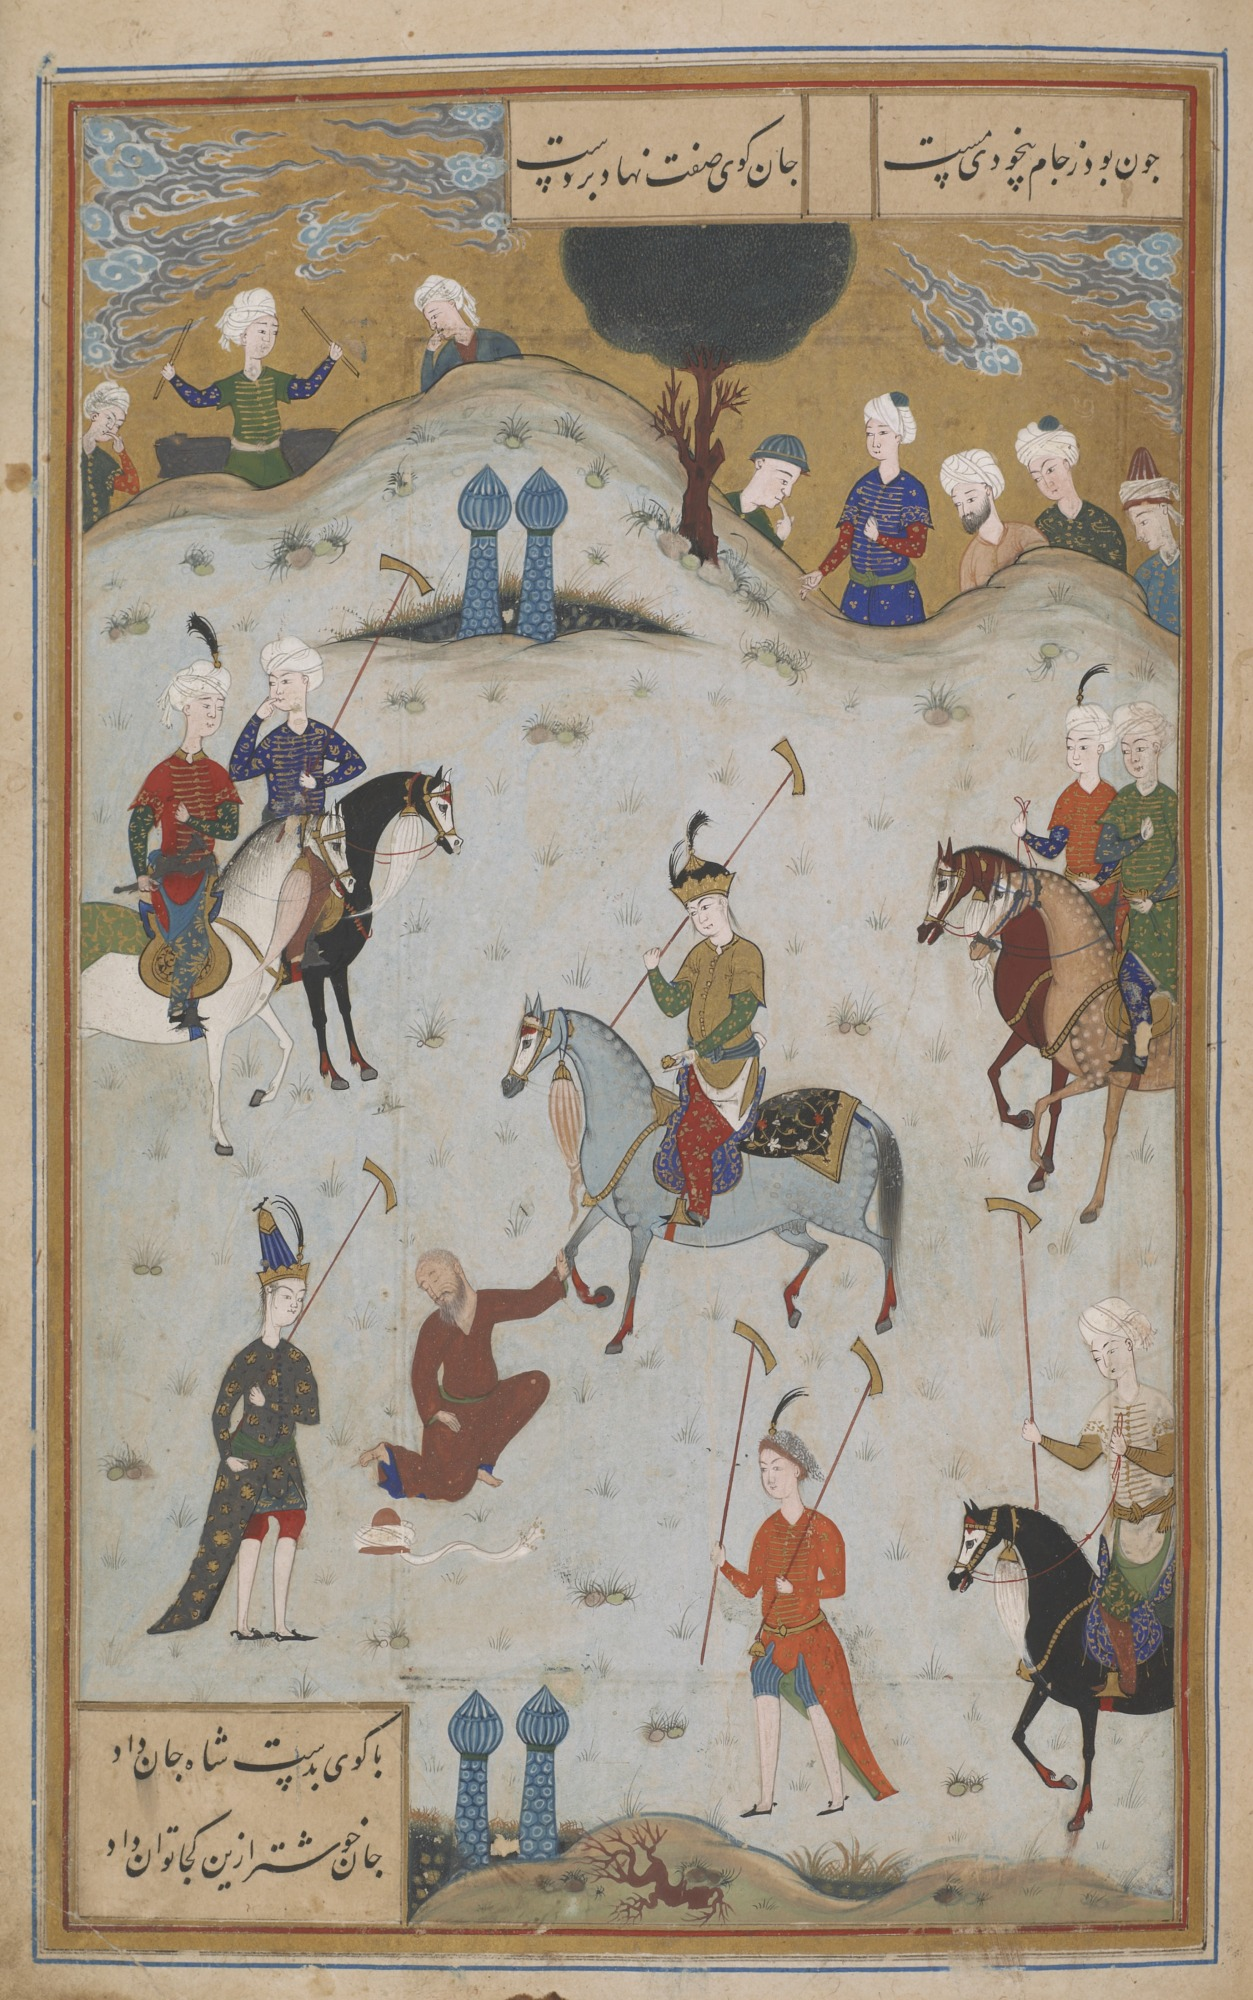 Folio from a Guy u chawgan (The ball and the polo-mallet) by Arifi (d. 1449): The dervish and the shah on the polo field: A scene in a polo field